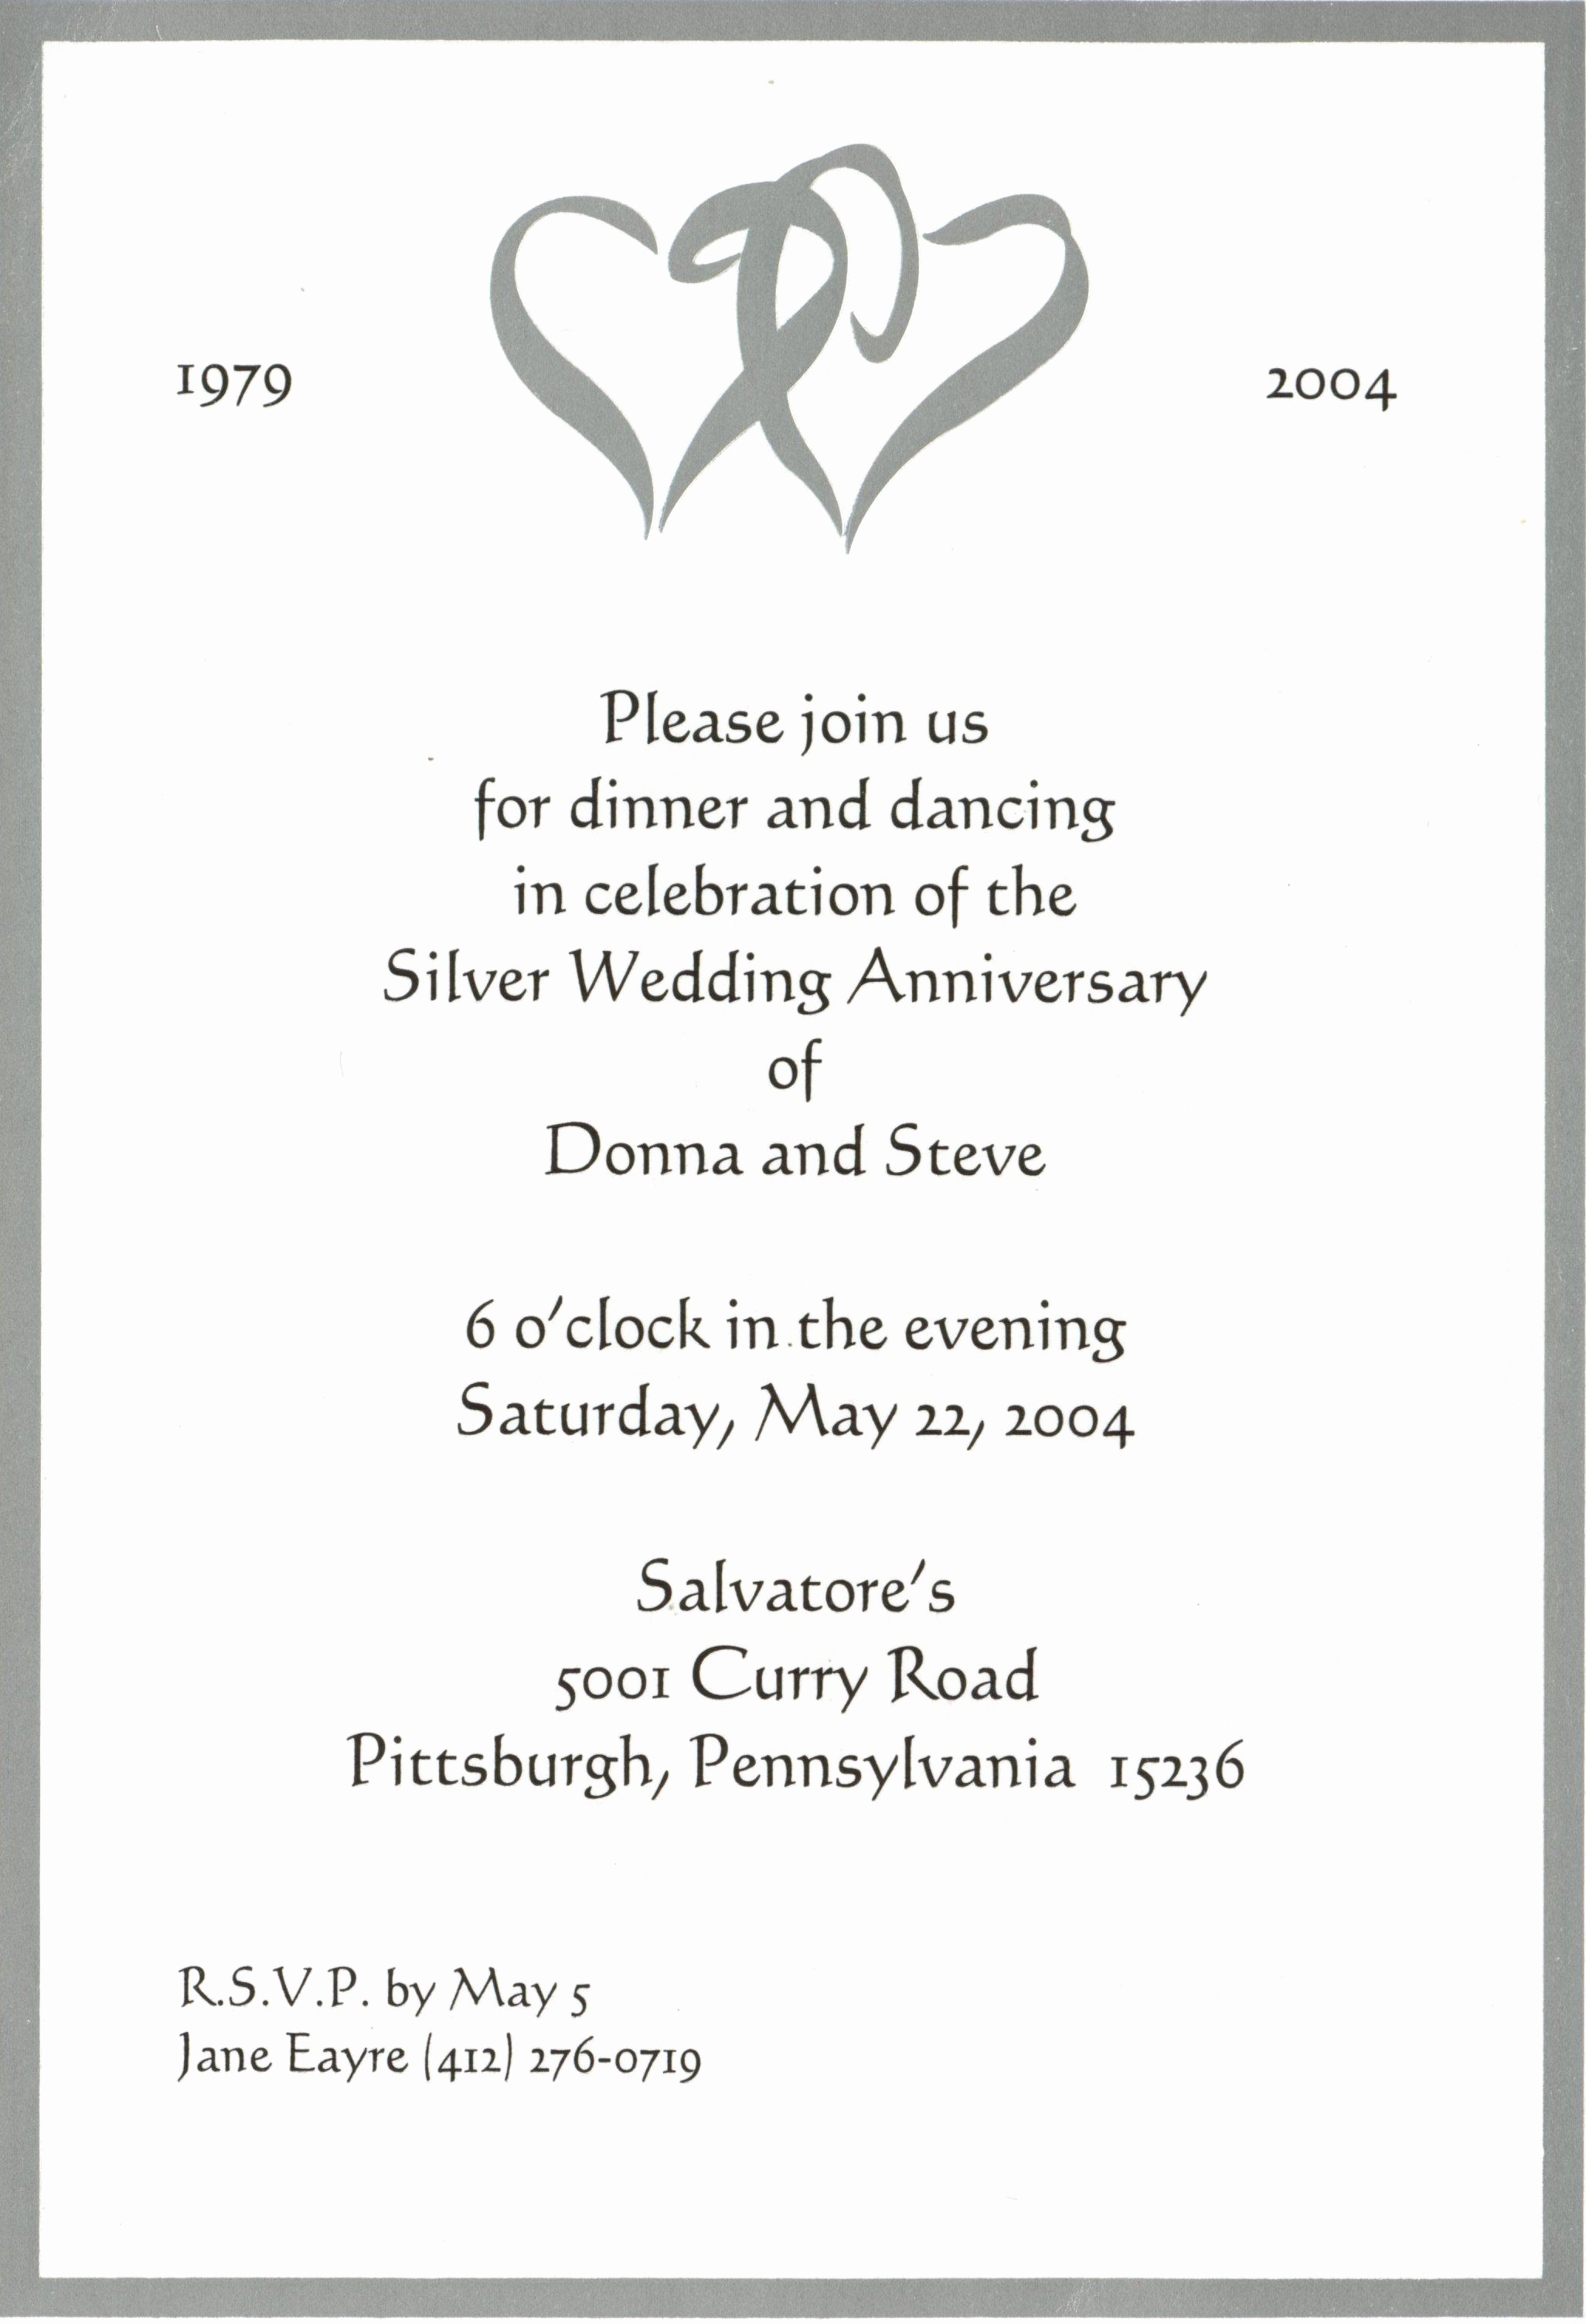 50th Anniversary Invitation Wording Beautiful 50th Wedding Anniversary Invitation Templates Awesome